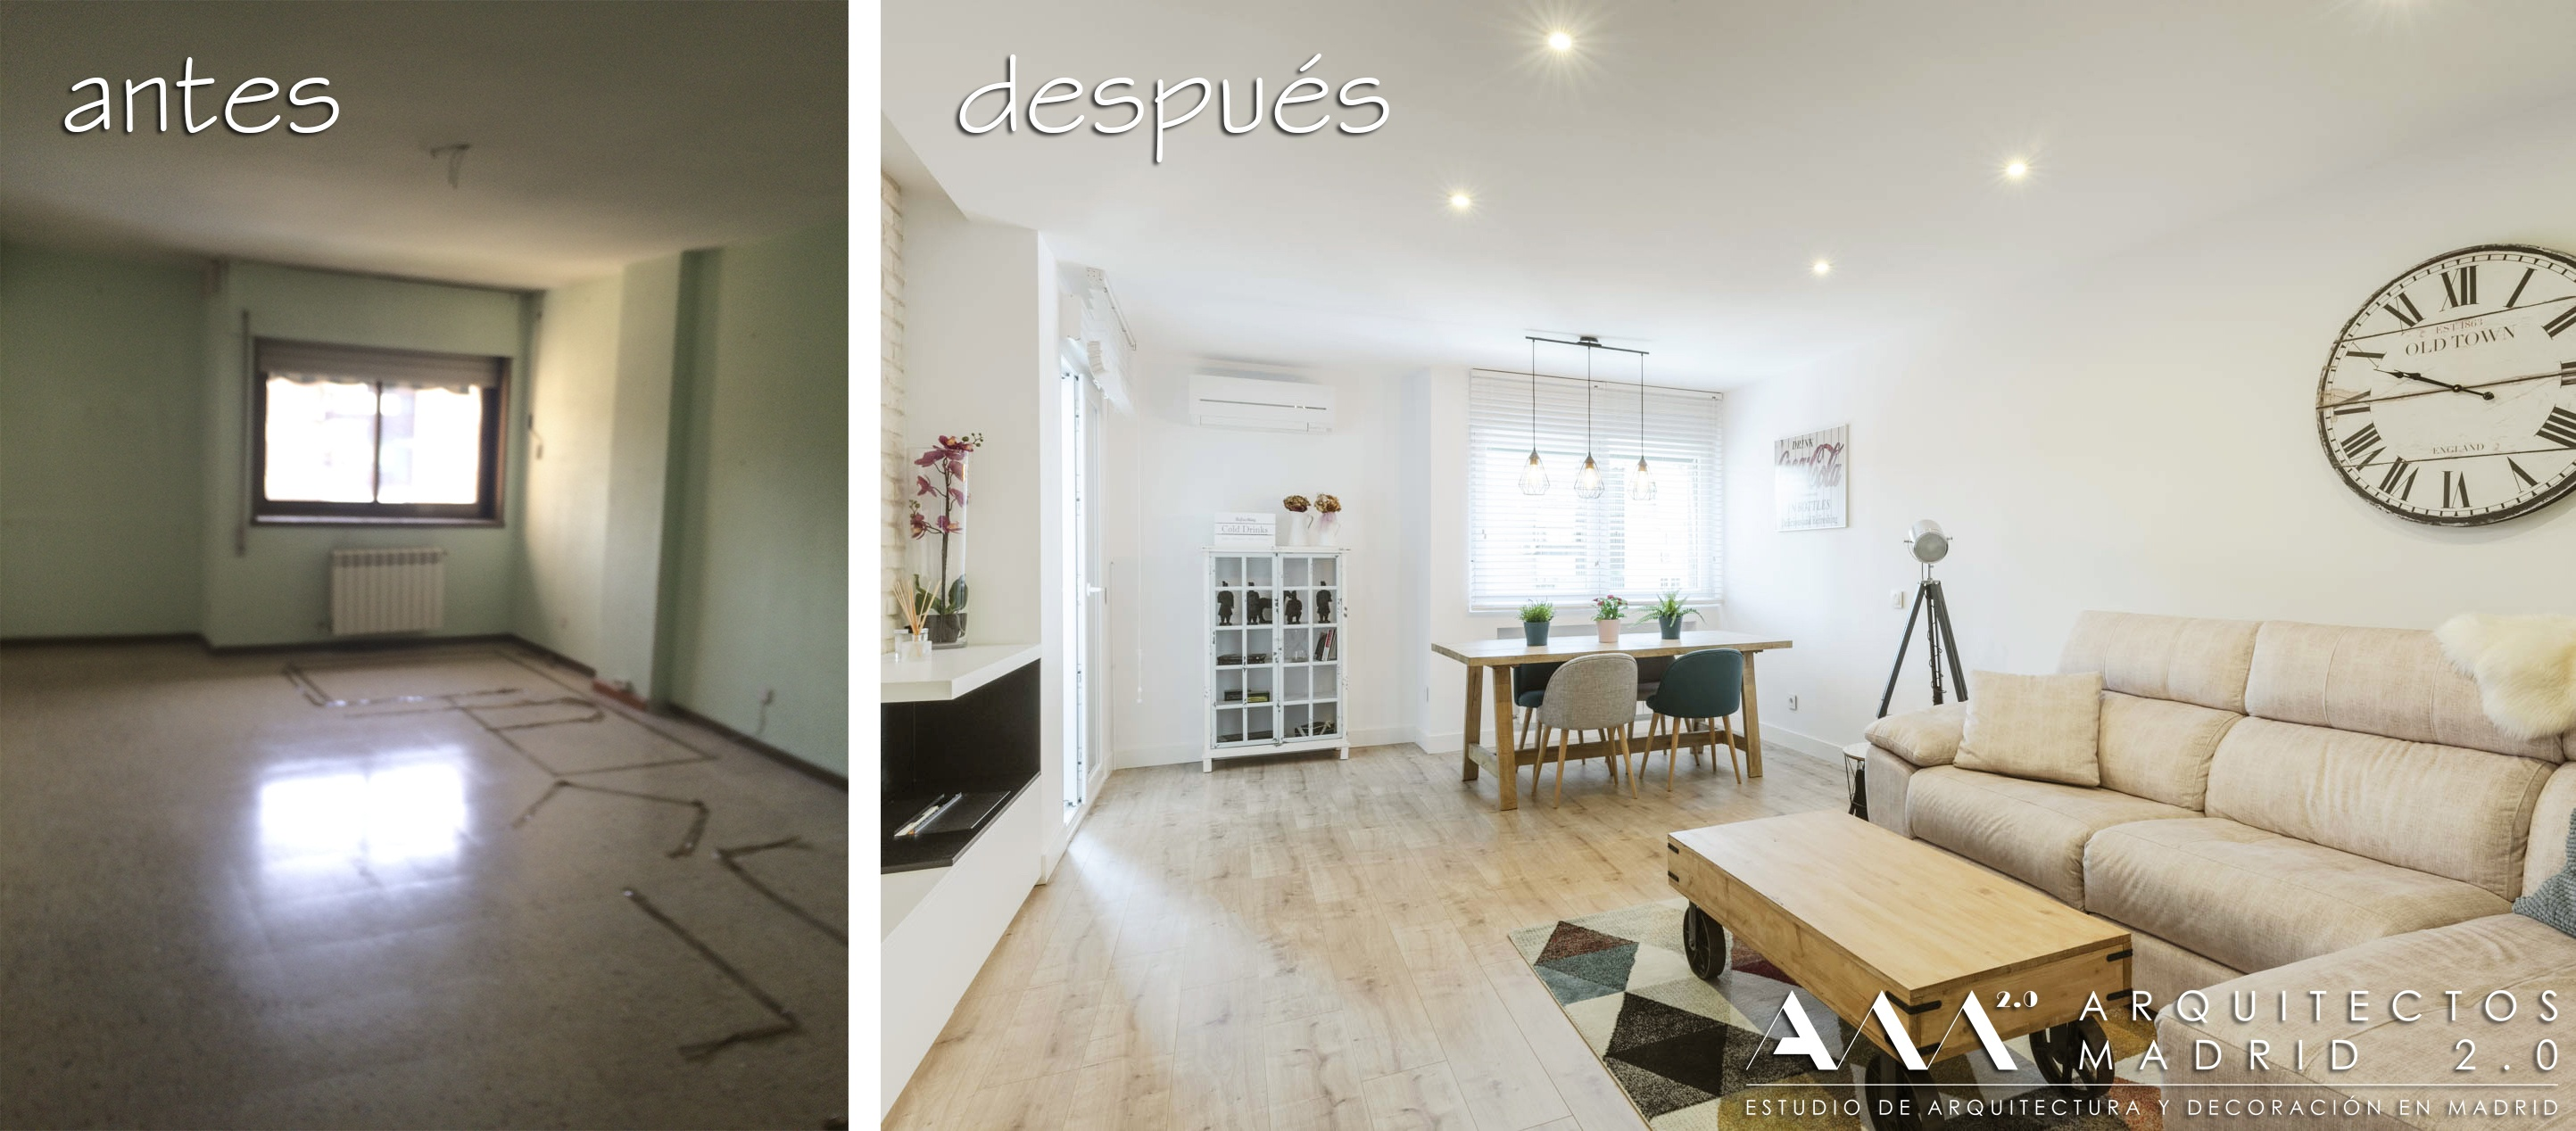 antes-despues-salón-reforma-vivienda-housing-reform-before-after-living-room